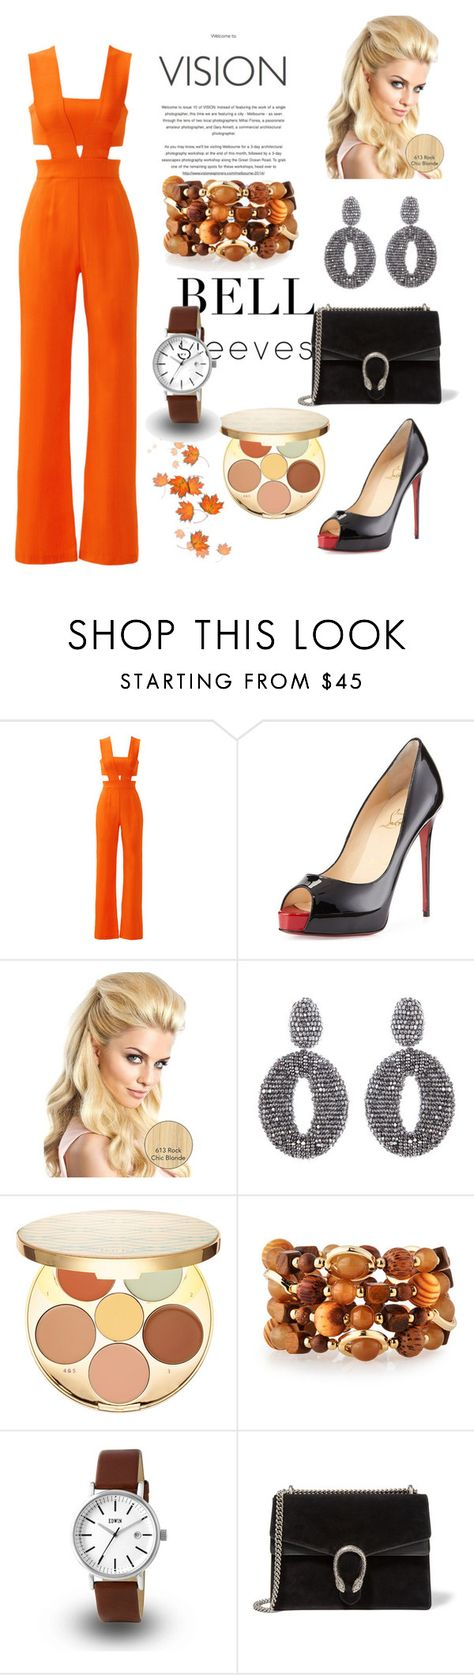 """Fashion Lady~"" by amy0527 ❤ liked on Polyvore featuring Karina Grimaldi, Christian Louboutin, Oscar de la Renta, tarte, Emily & Ashley and Gucci"